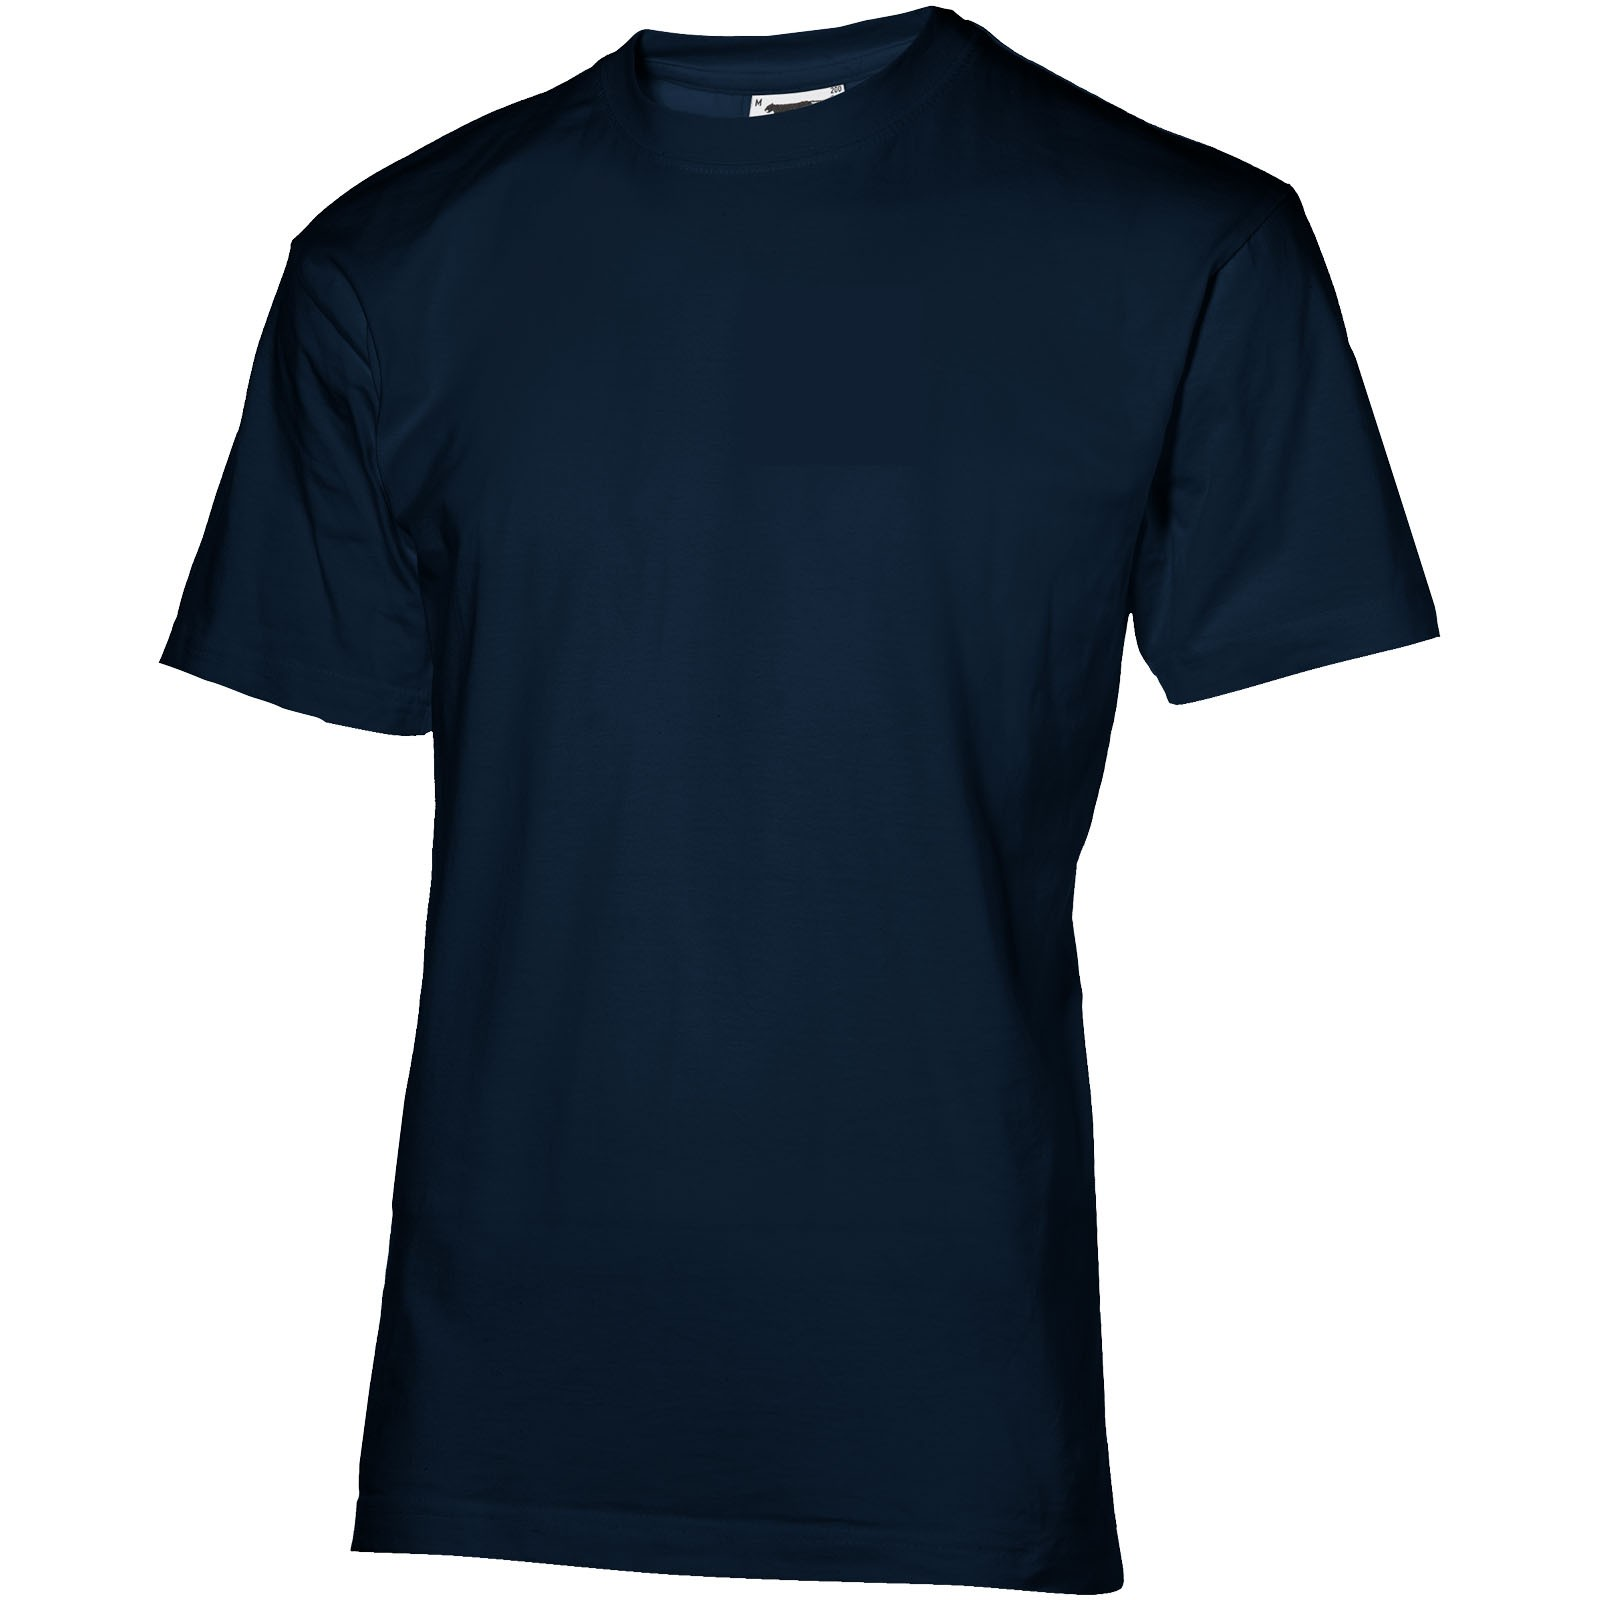 Return Ace short sleeve unisex t-shirt - Navy / XL